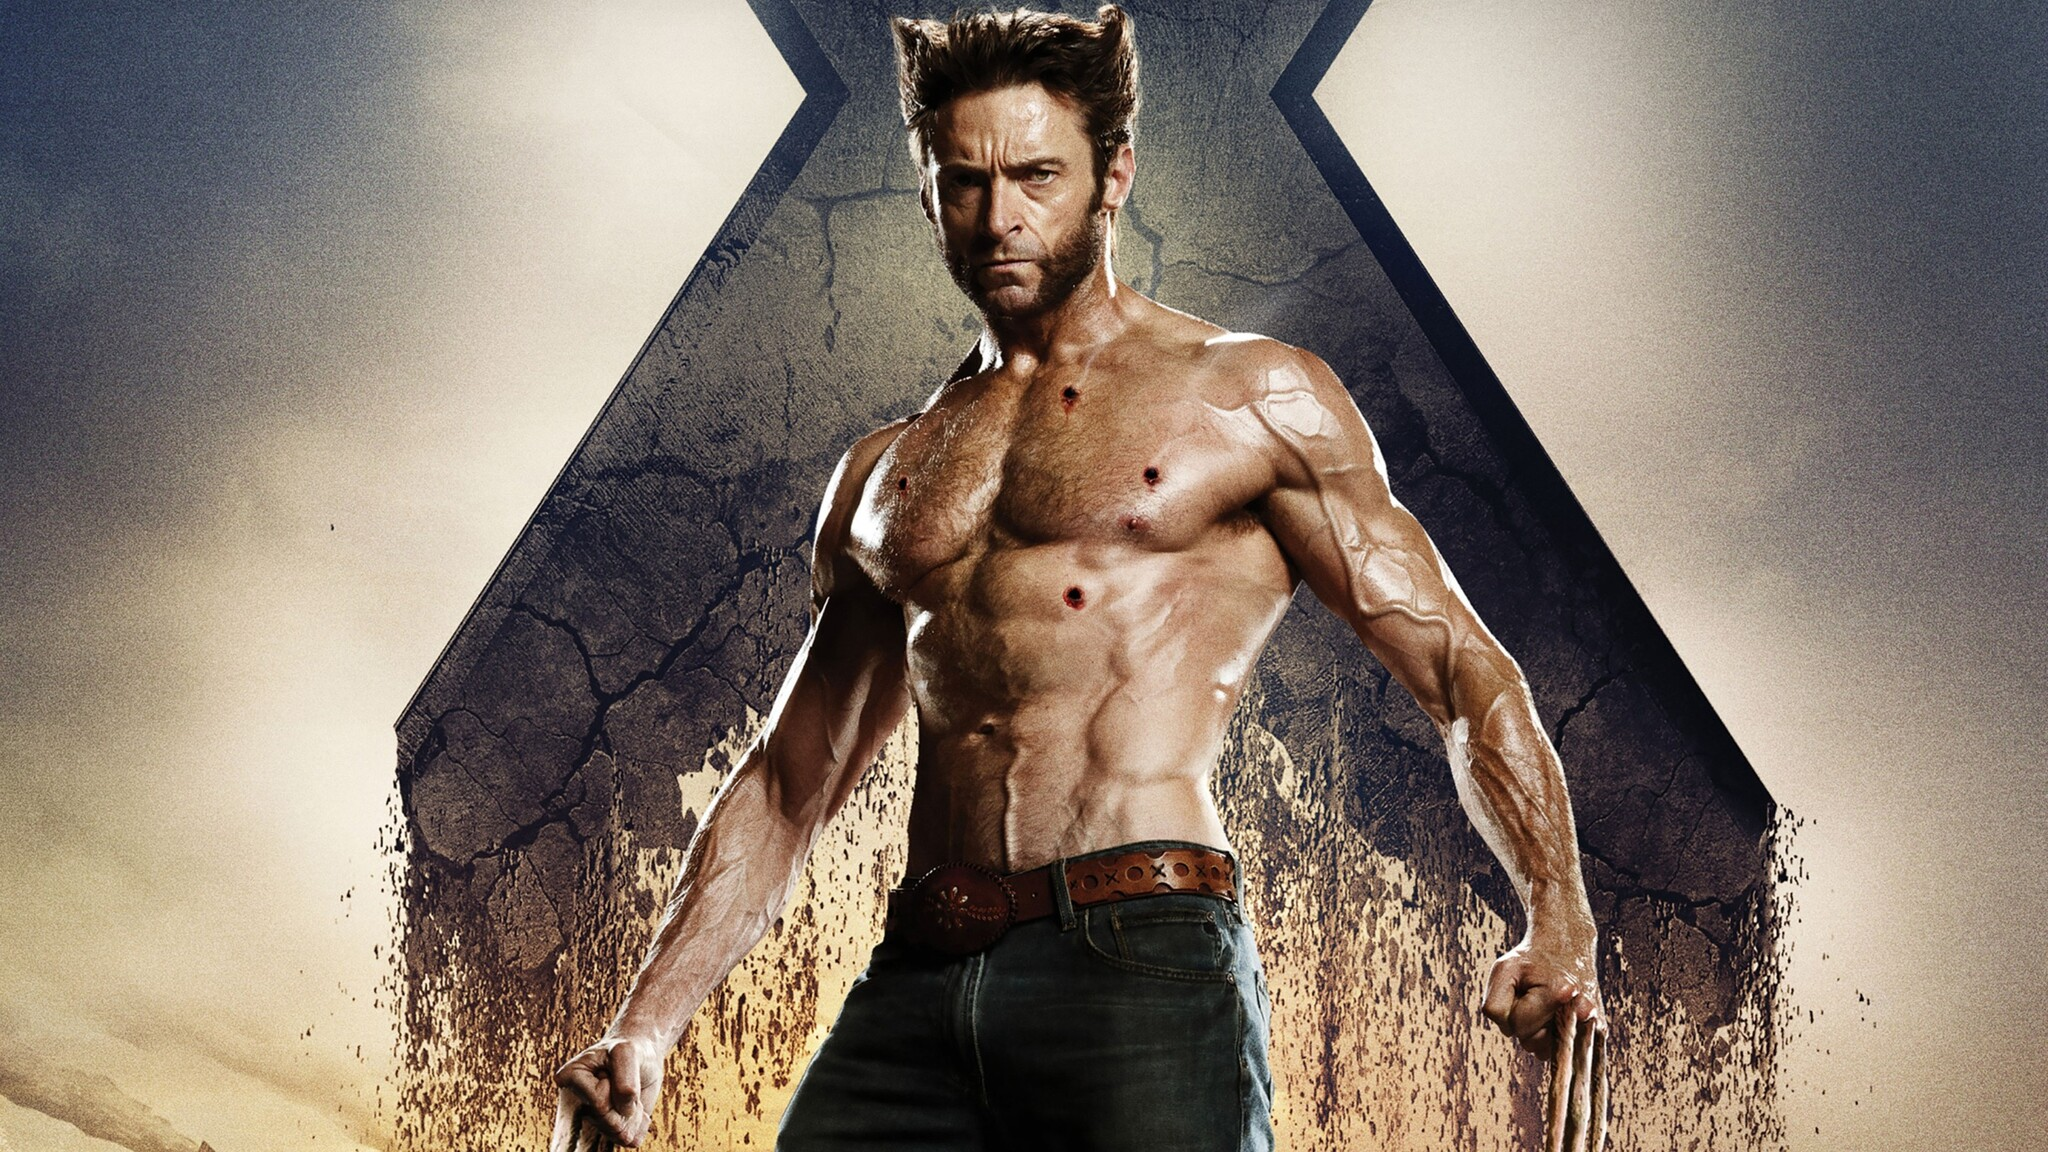 2048x1152 Wolverine In X Men 2048x1152 Resolution Hd 4k Wallpapers Images Backgrounds Photos And Pictures